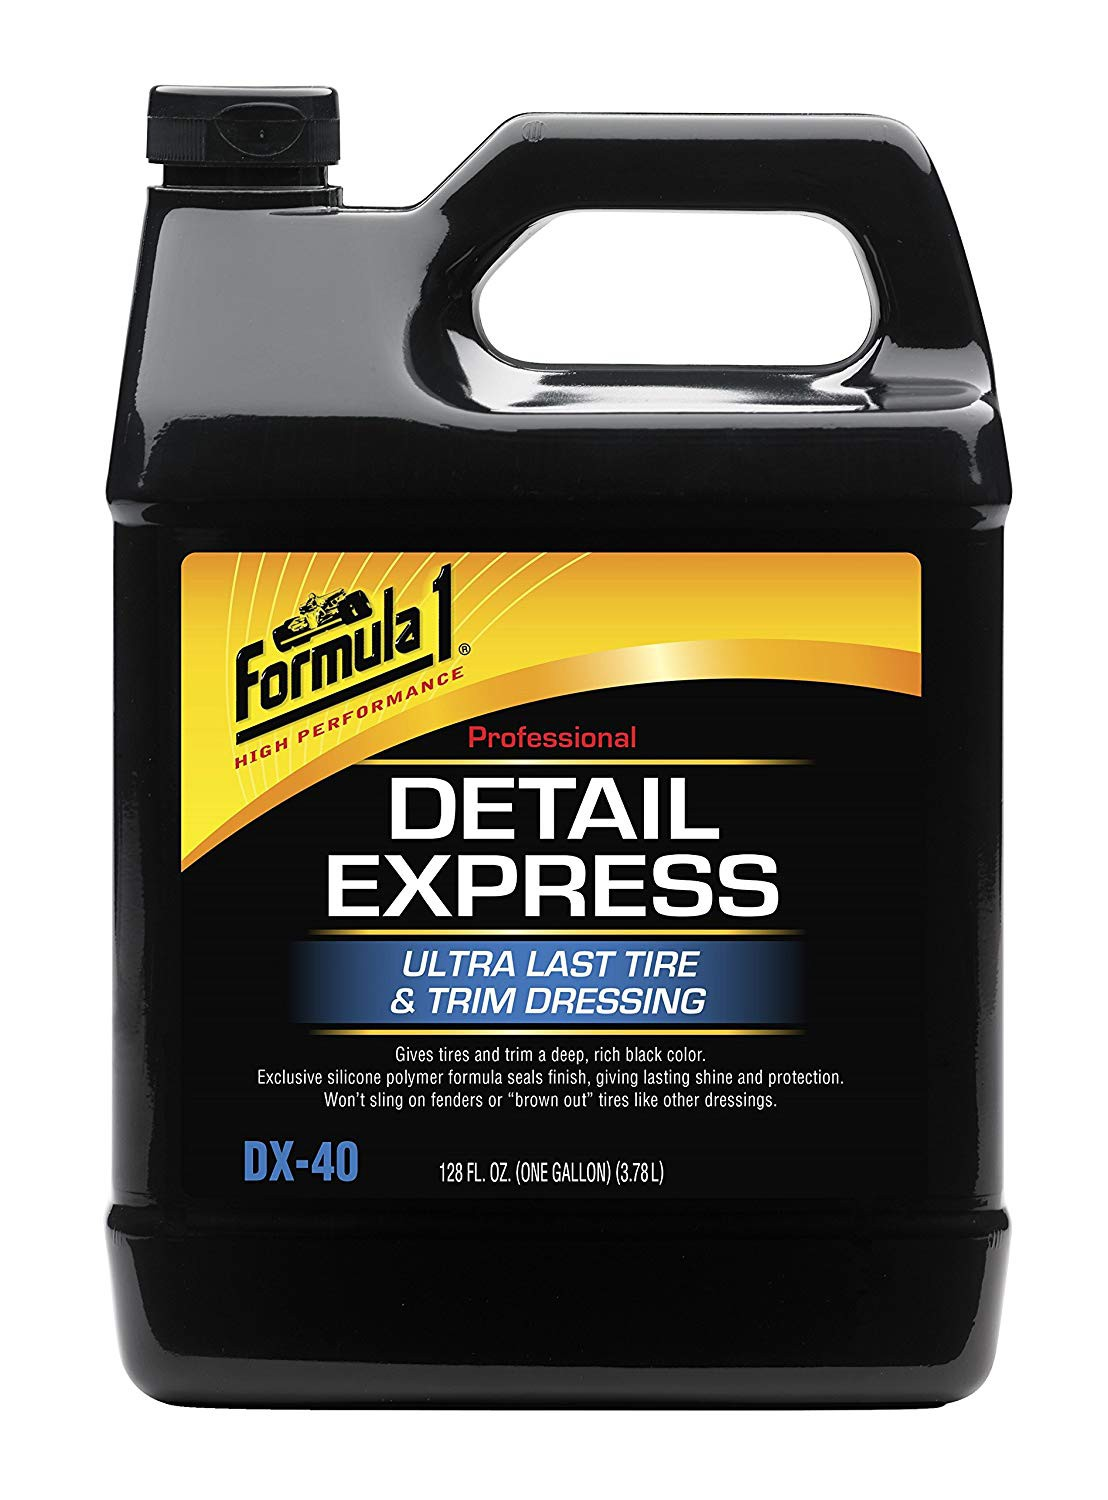 formula-1-professional-series-detail-express-dx-40-ultra-last-tyre-and-trim-dressing-378-l